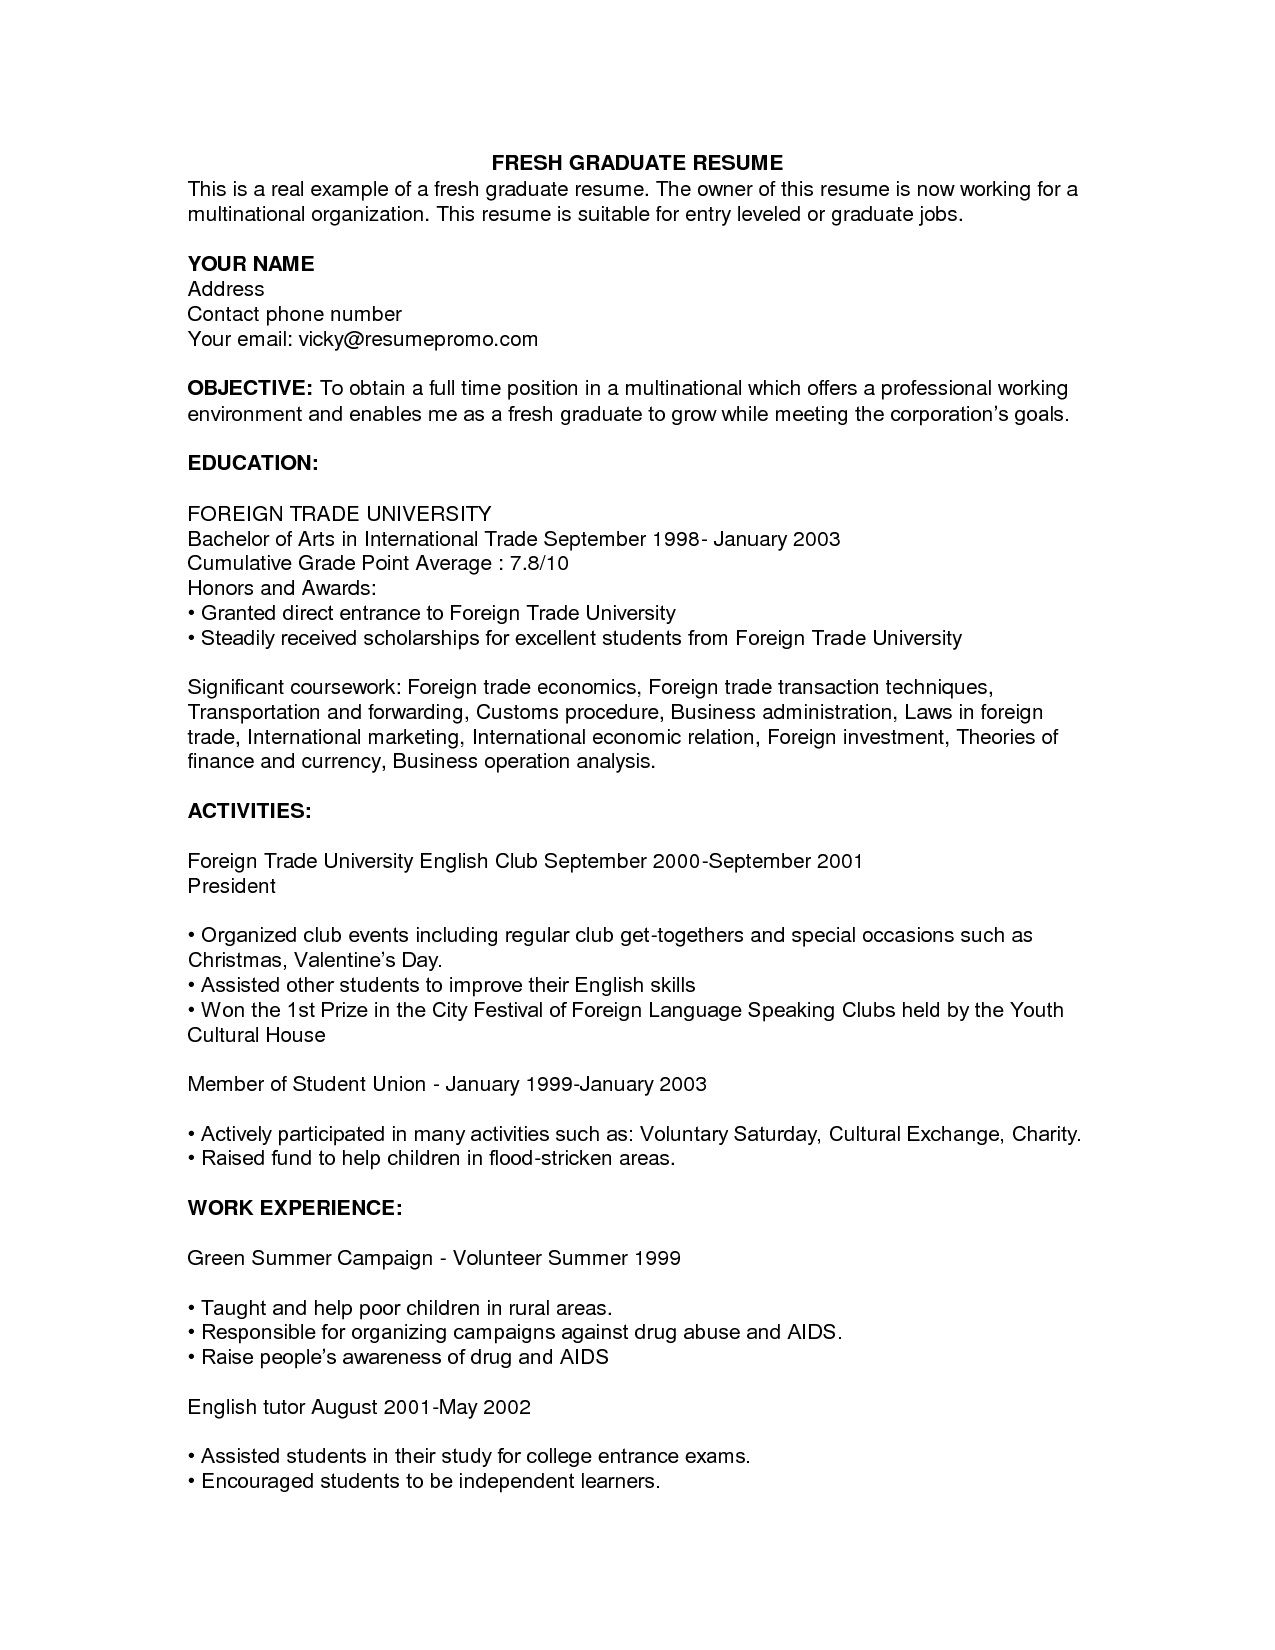 Pin by Job Resume on Job Resume Samples | Pinterest | Job resume ...